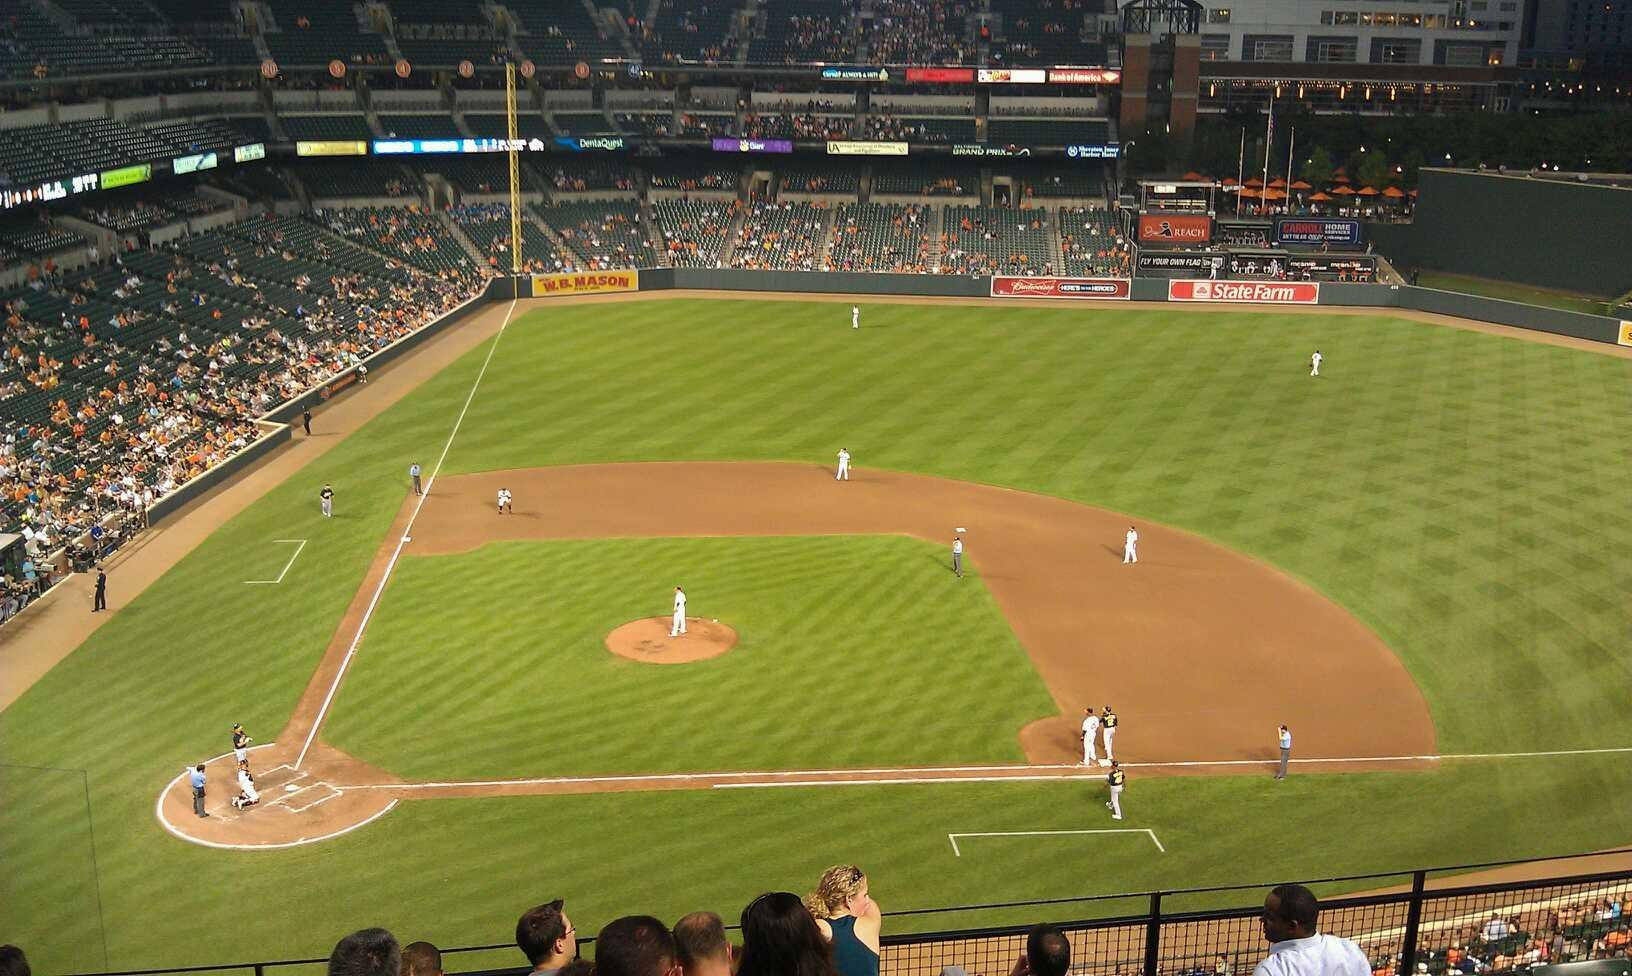 Oriole Park at Camden Yards Section 324 Row 8 Seat 18